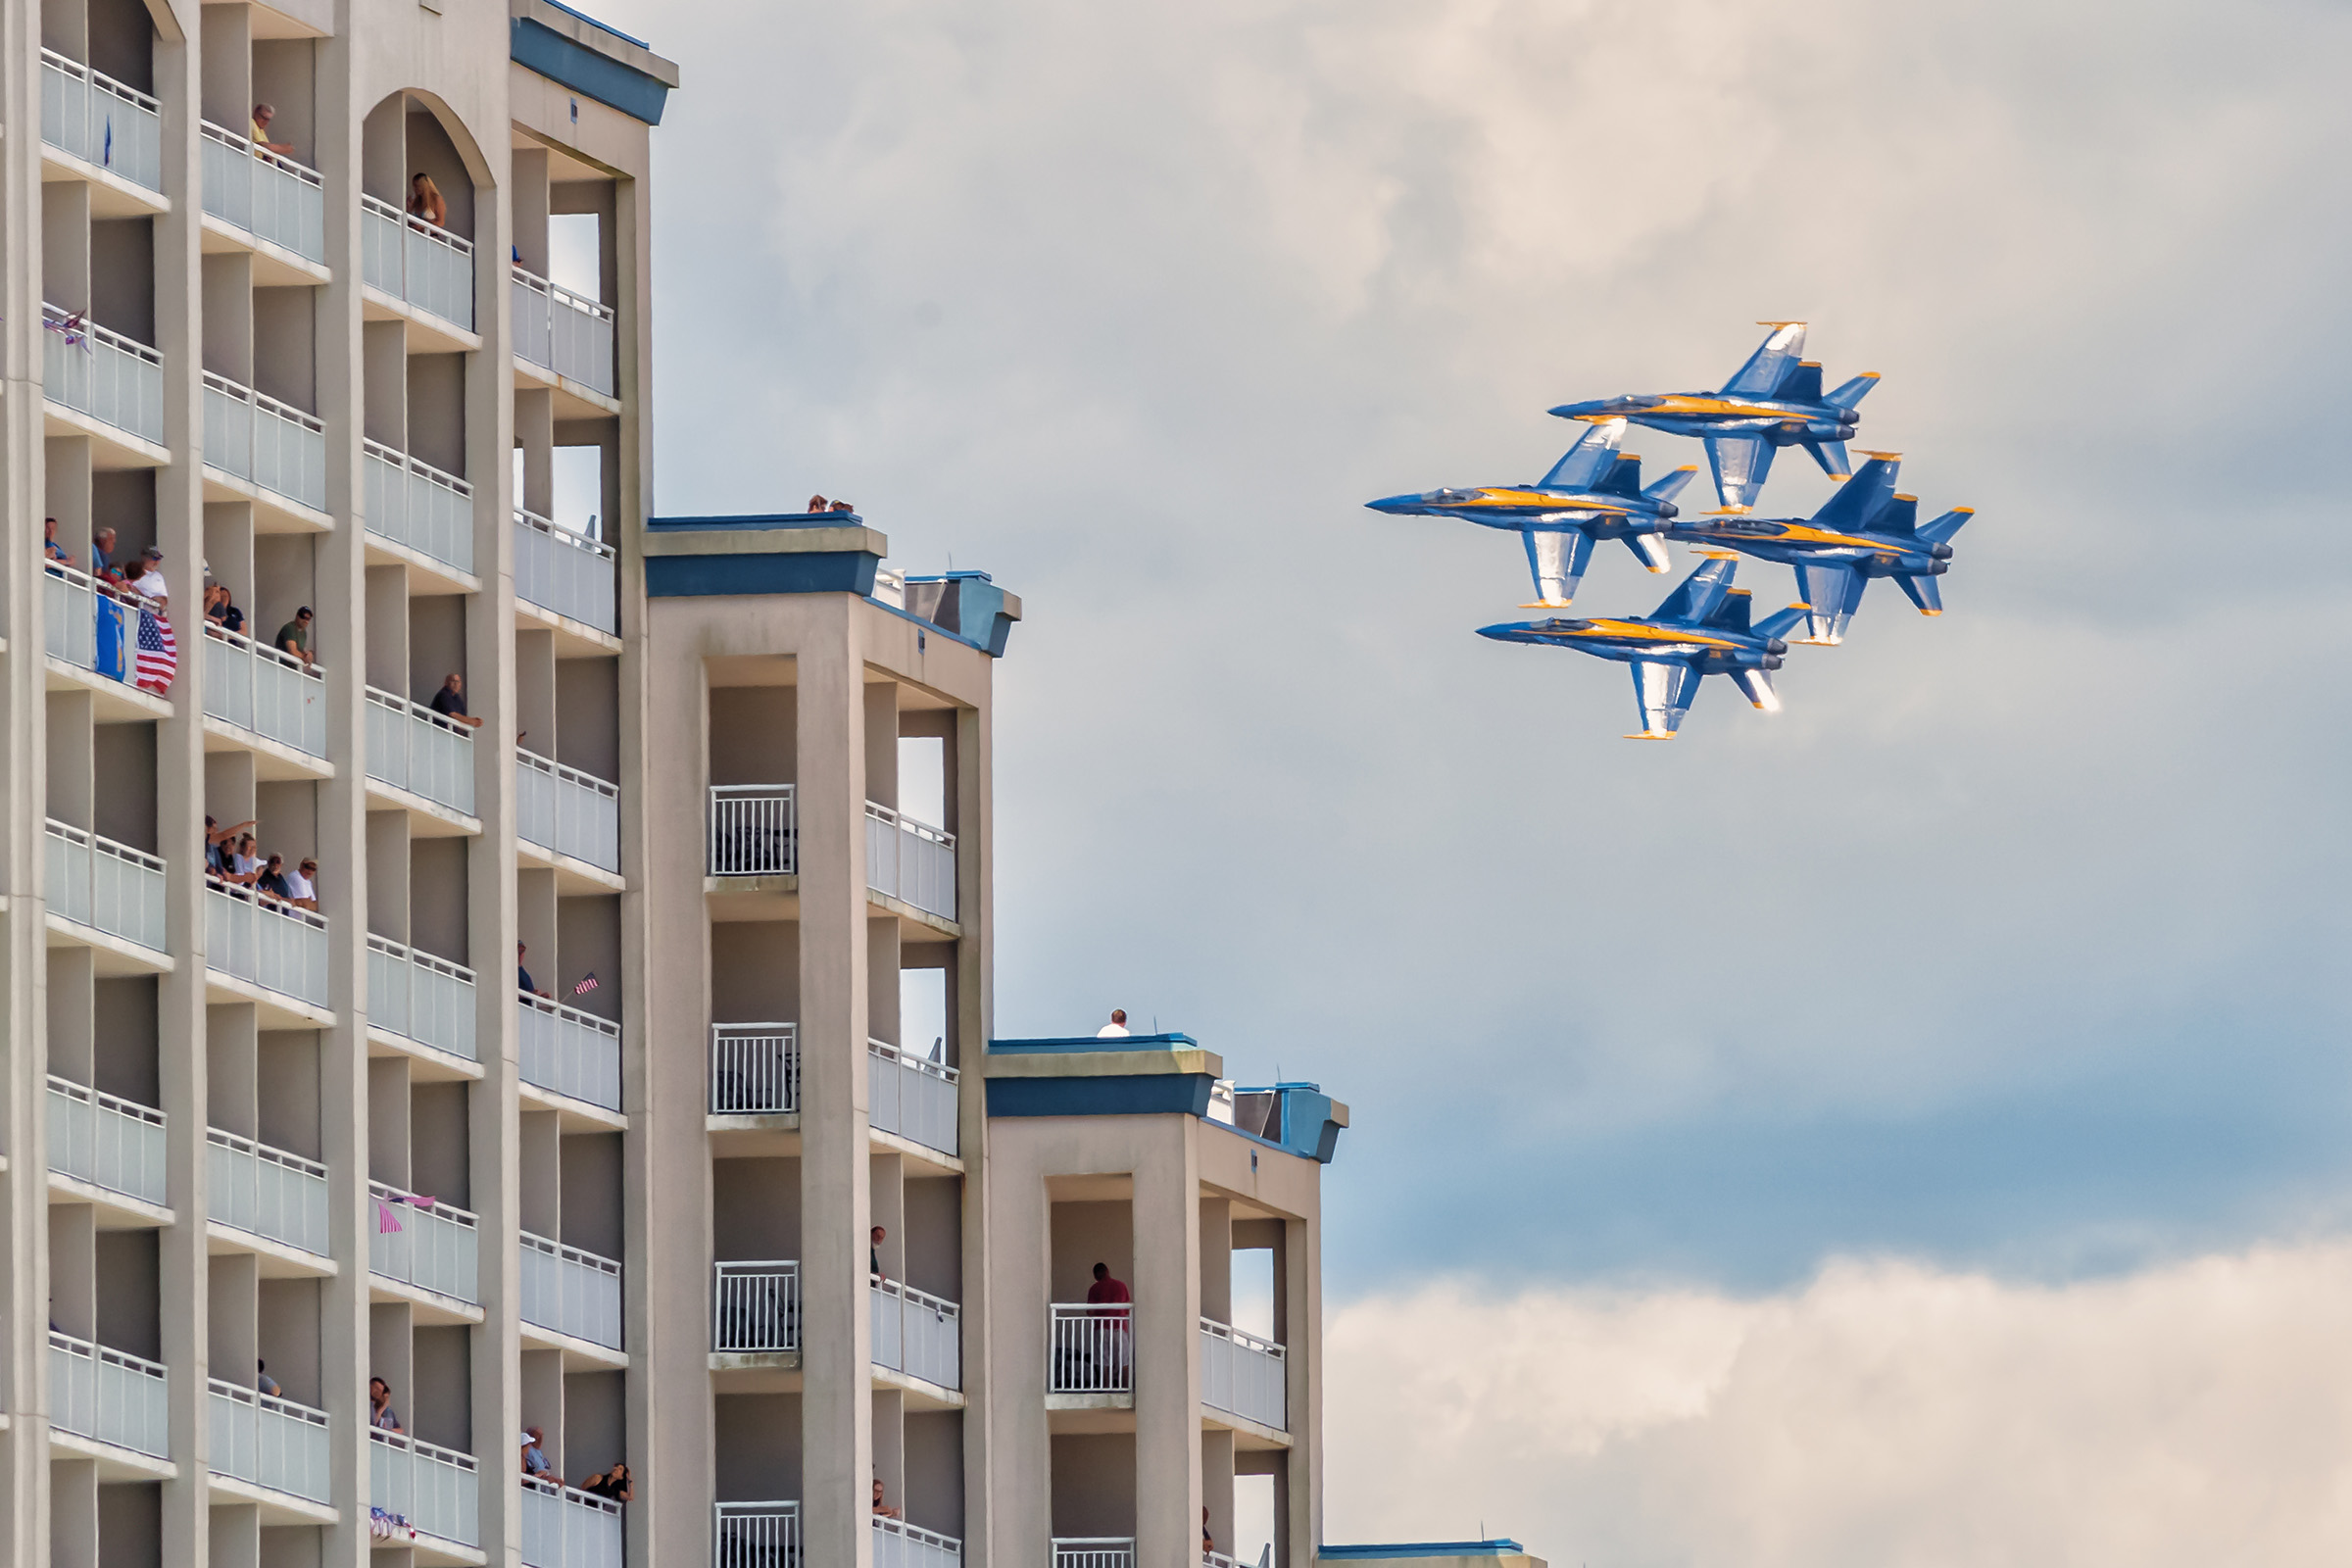 Perfect Weather, Blue Angels Bring Crowds To Resort; Weekend Called 'A Great Success'